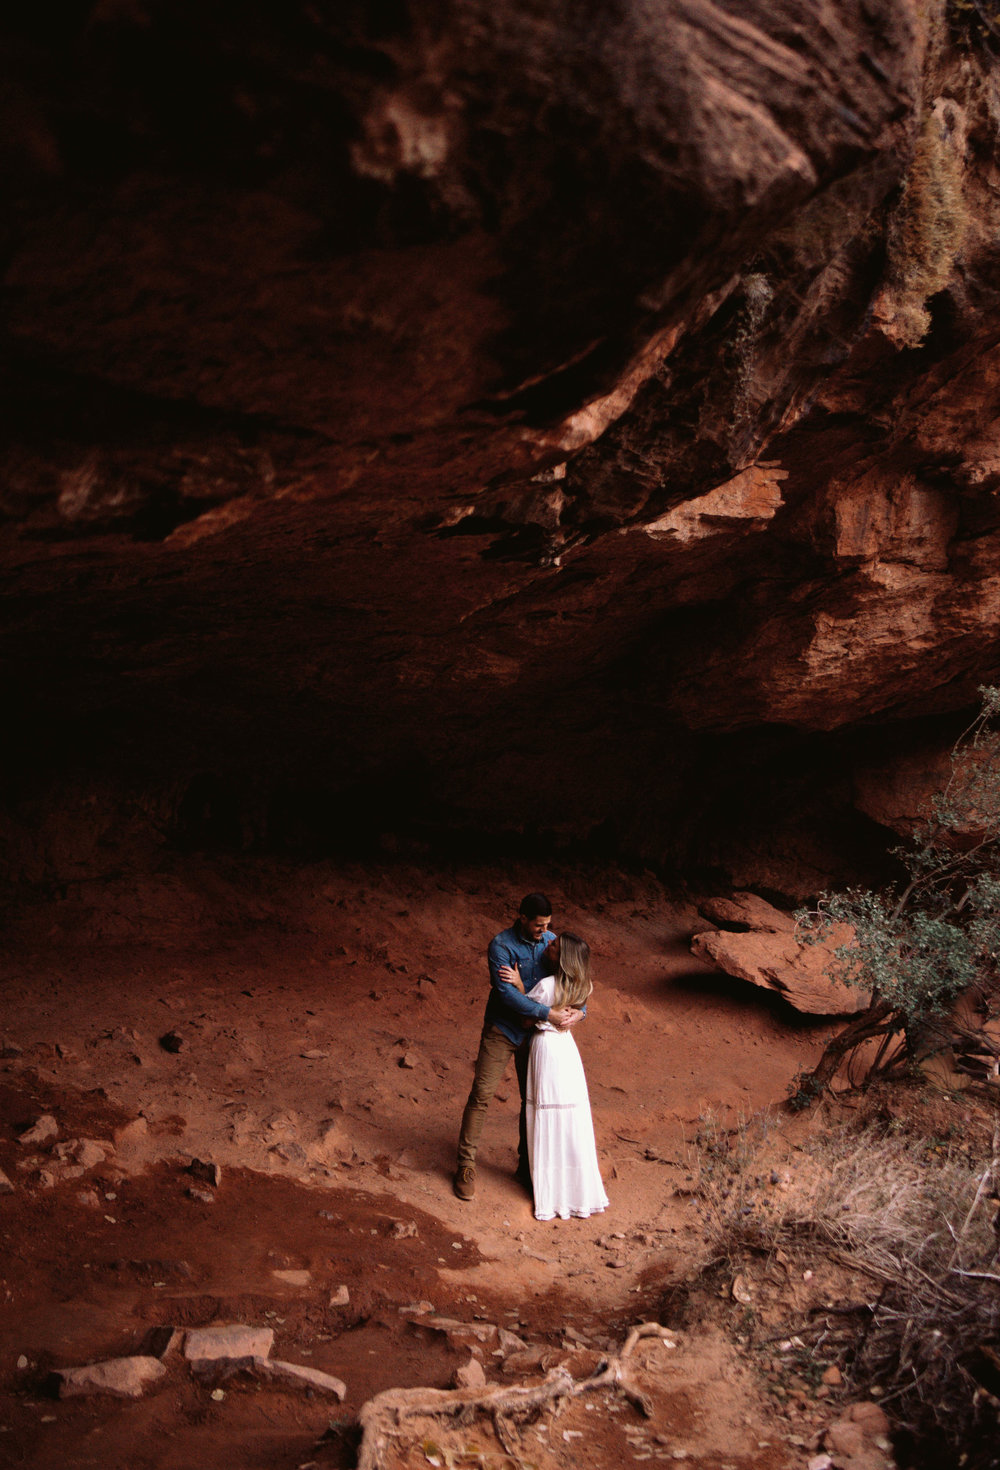 """Karen, about her Zion National Park engagement session:  """"My fiance and I worked with Haley on our engagement photos. We are from Boston and had a pre-planned vacation to Utah and reached out to her after browsing her website and falling in love with her work. From the very beginning Haley was extremely responsive, kind, and helpful. We were not familiar with the area and she made recommendations on where we should shoot and even sent through links to provide directions and more information on the hike! On the day of our shoot, Haley was on time, brought a blanket for me to change behind (haha), and fully engaged! She had wonderful ideas about where to stop and shoot and offered helpful advice on posing, etc. We received all of our photos back within 3 weeks and they are BEYOND anything we could have imaged. Haley is just as talented as she is sweet, which is hard to match! I would highly recommend Haley to anyone for their photography needs. """""""